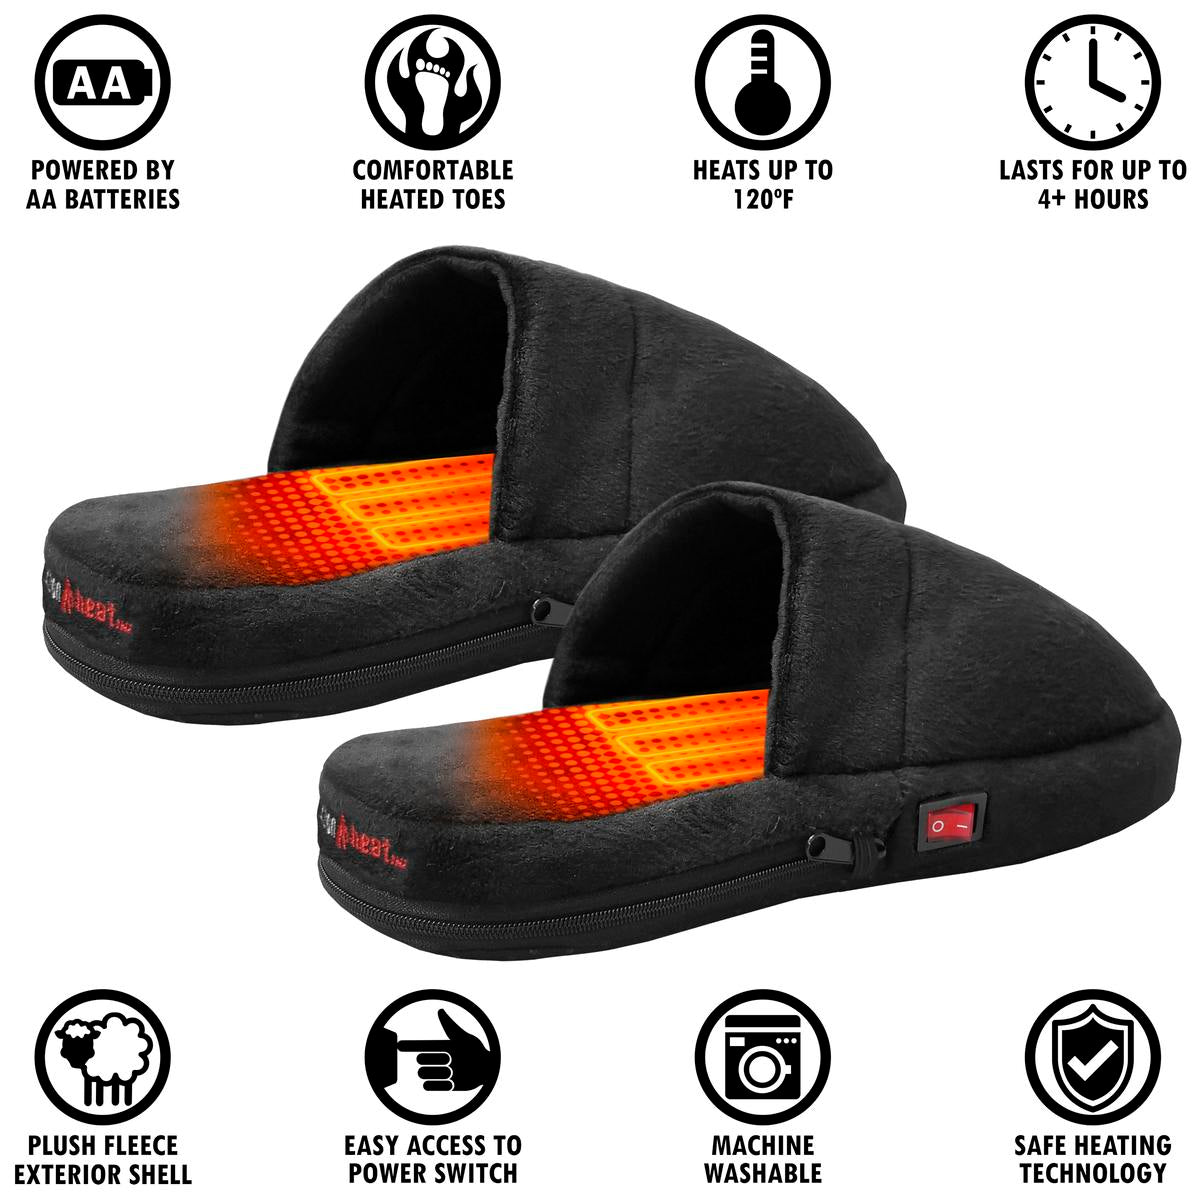 ActionHeat AA Battery Heated Slippers - Back